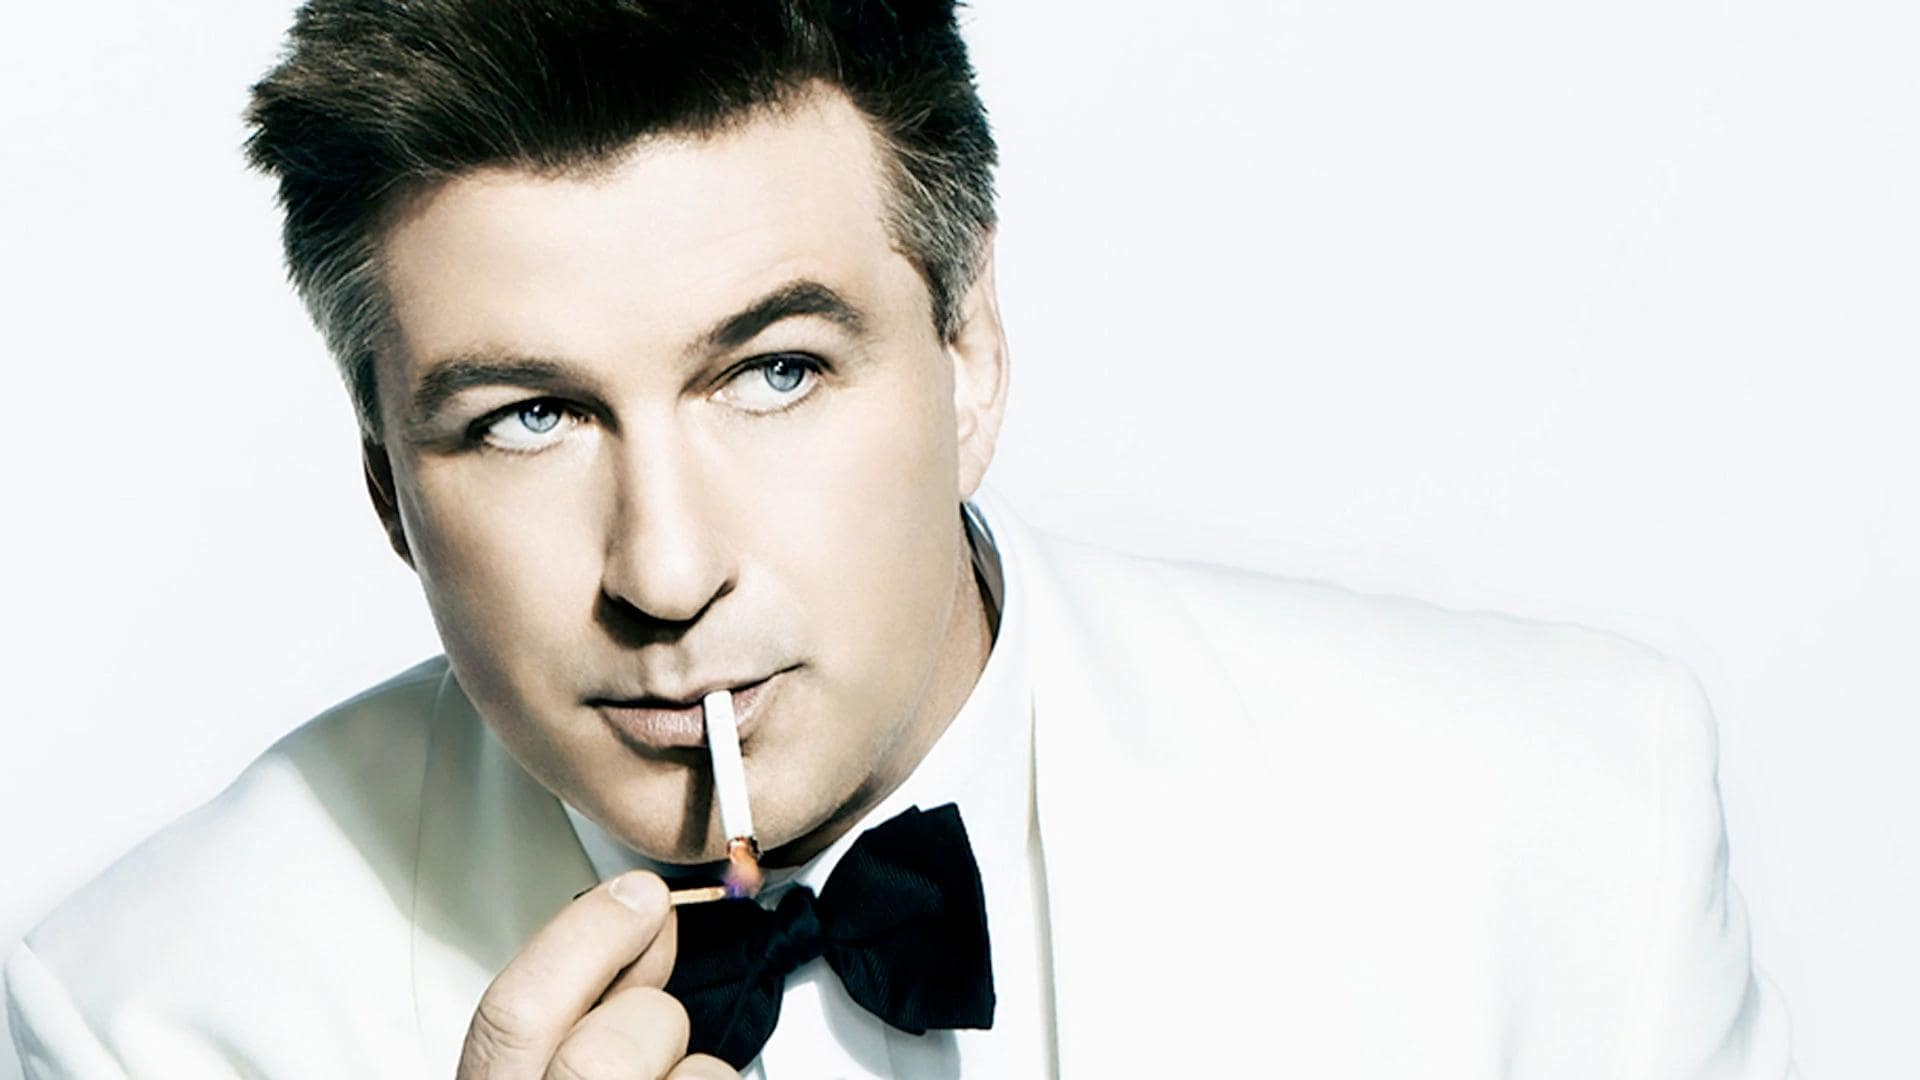 Alec Baldwin: December 10, 2005